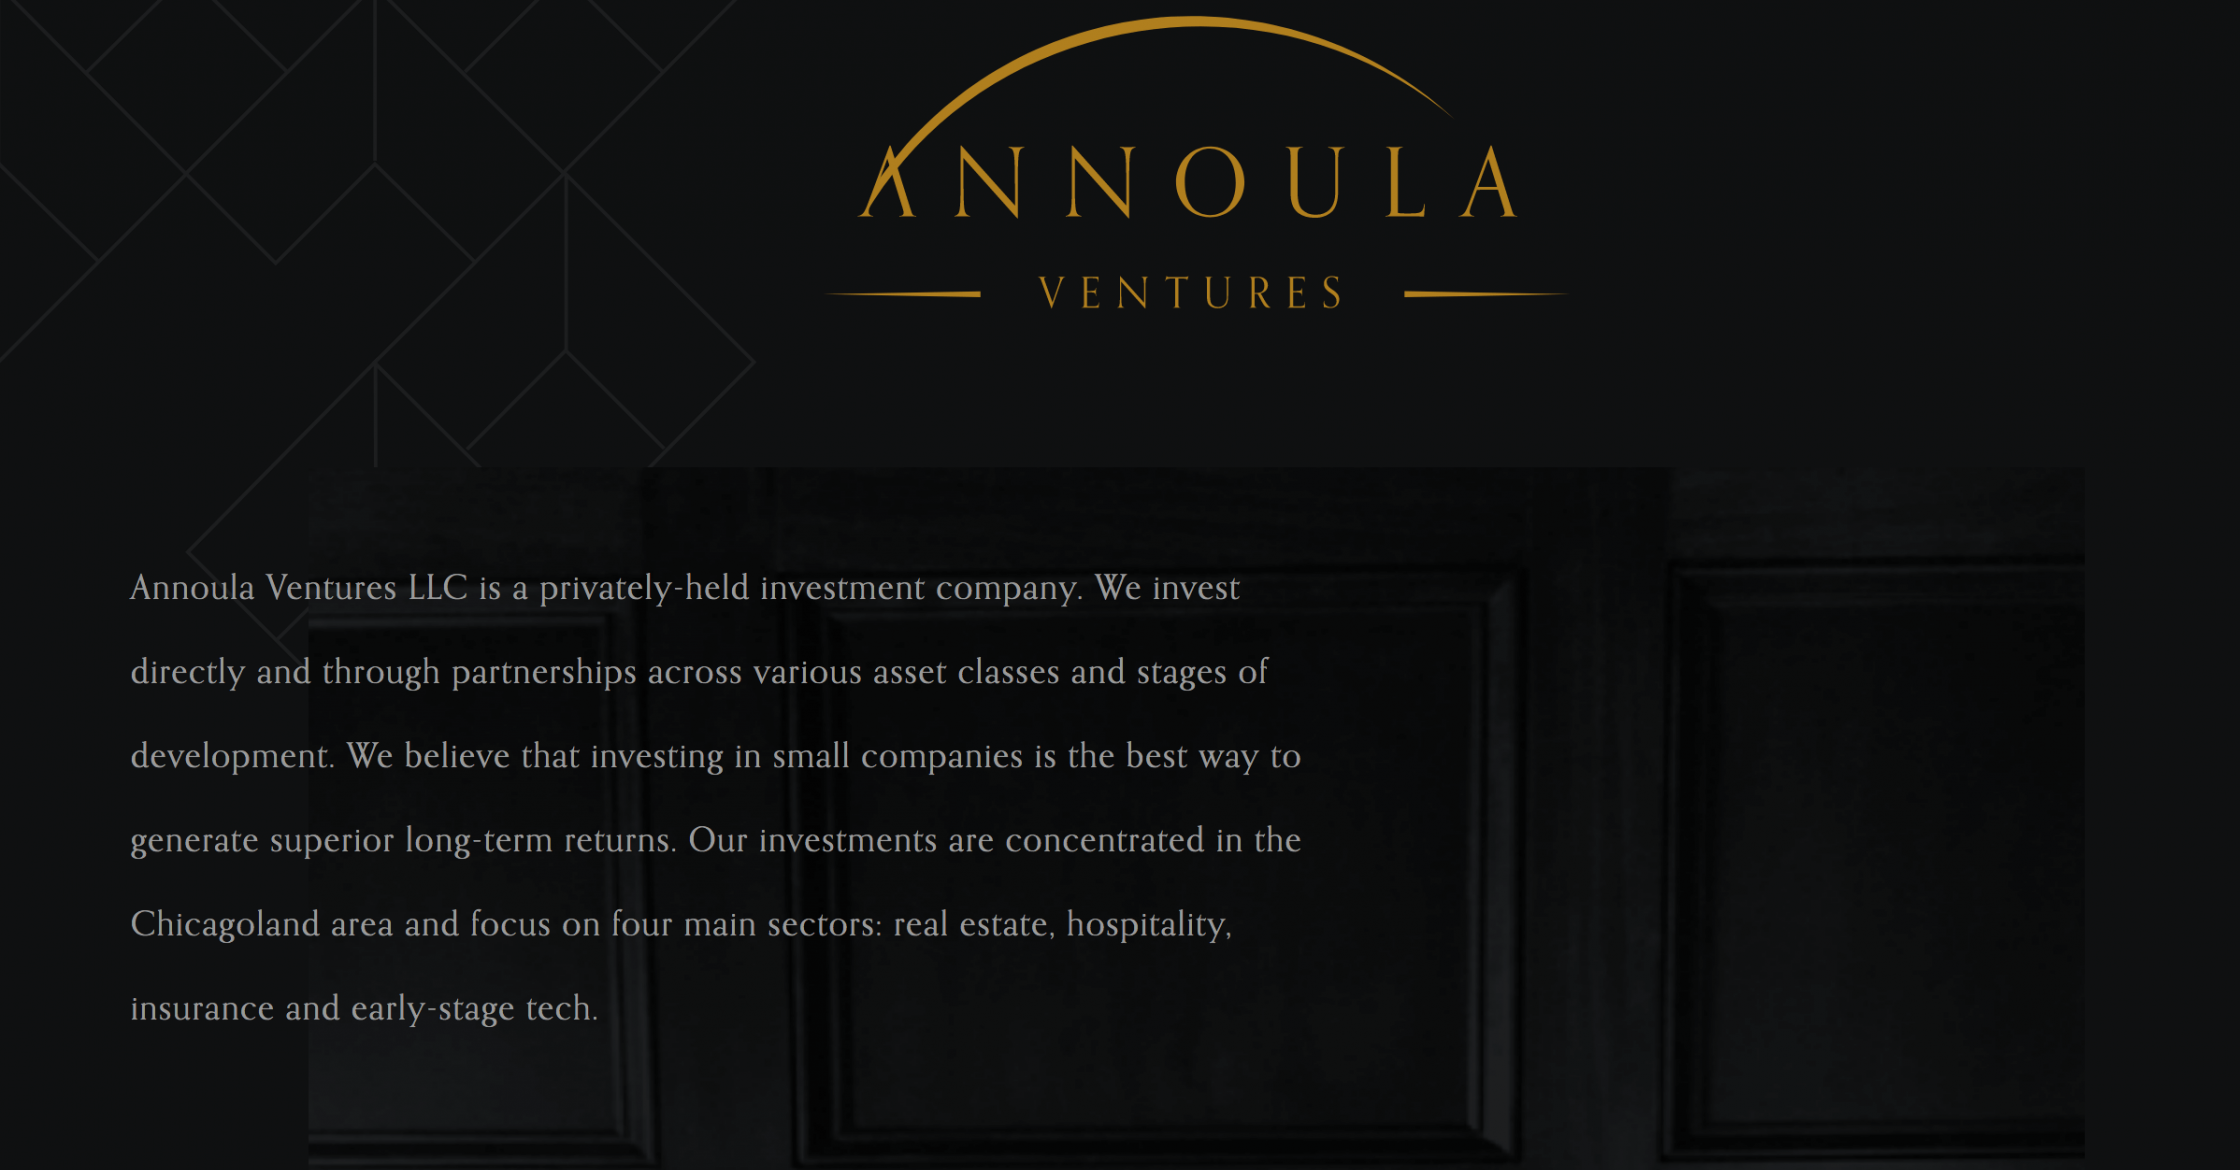 Annoula Ventures homepage screenshot